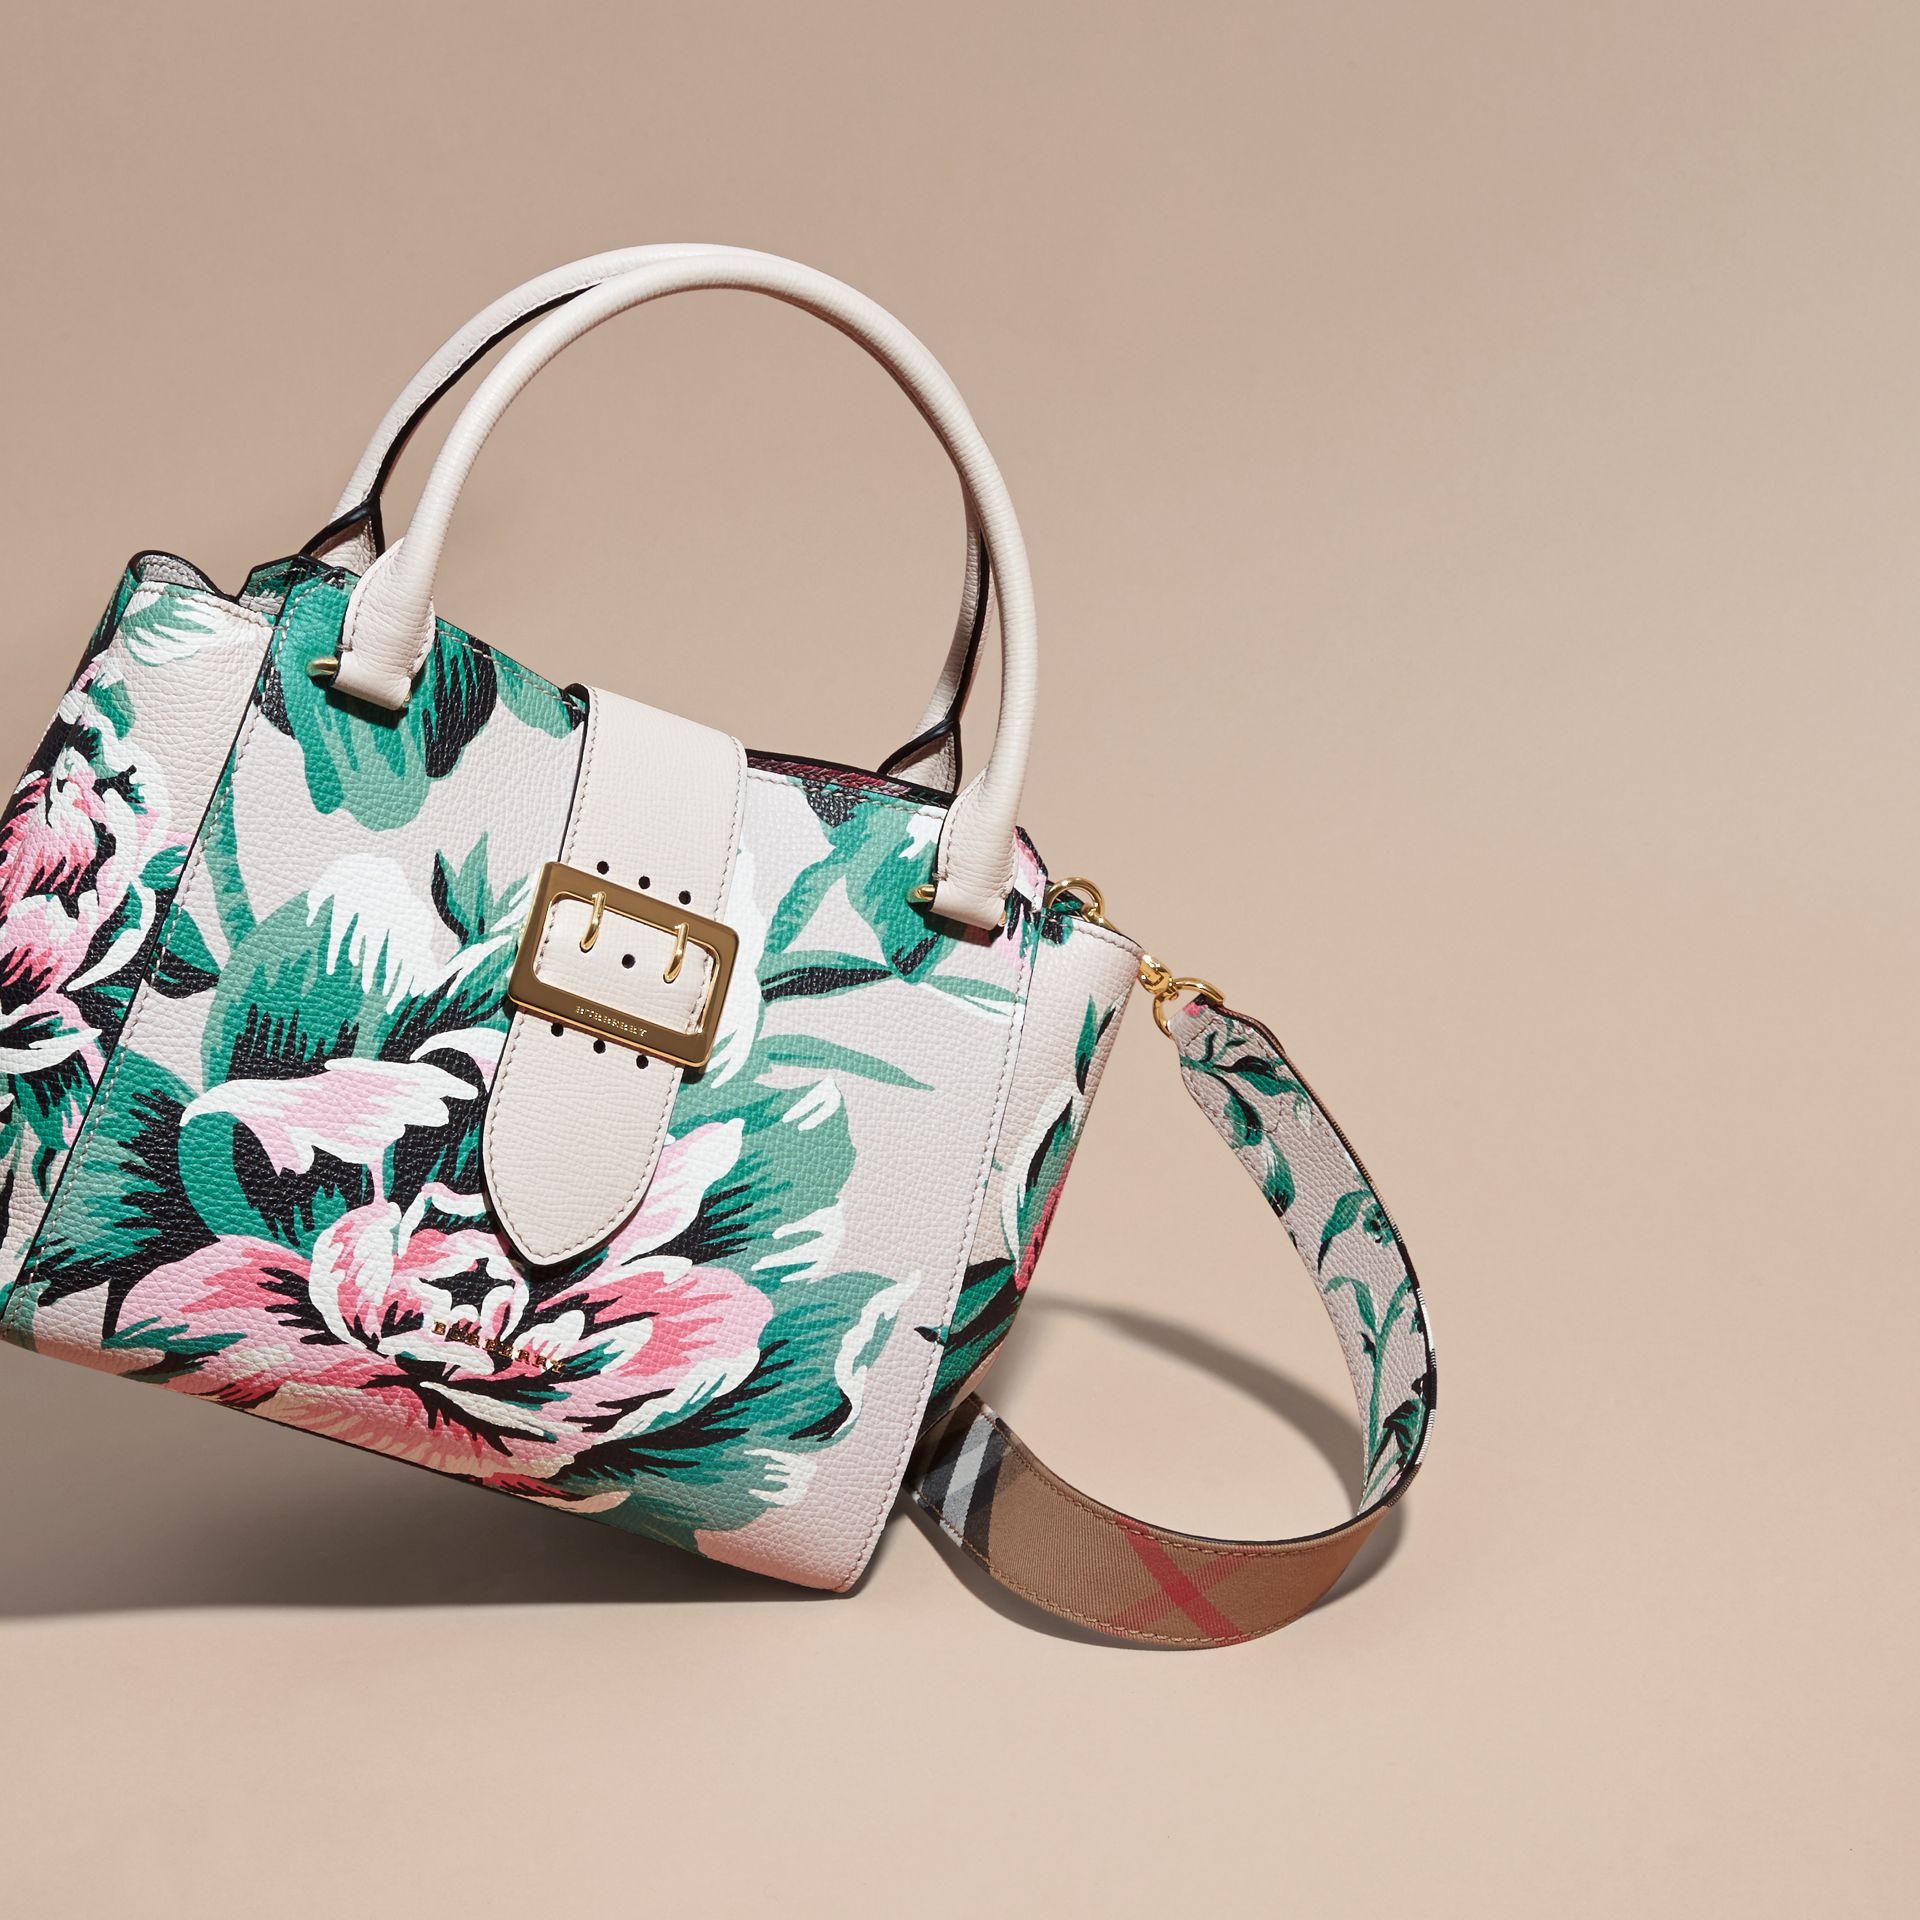 Natural/emerald green The Medium Buckle Tote in Peony Rose Print Leather Natural/emerald Green - gallery image 8